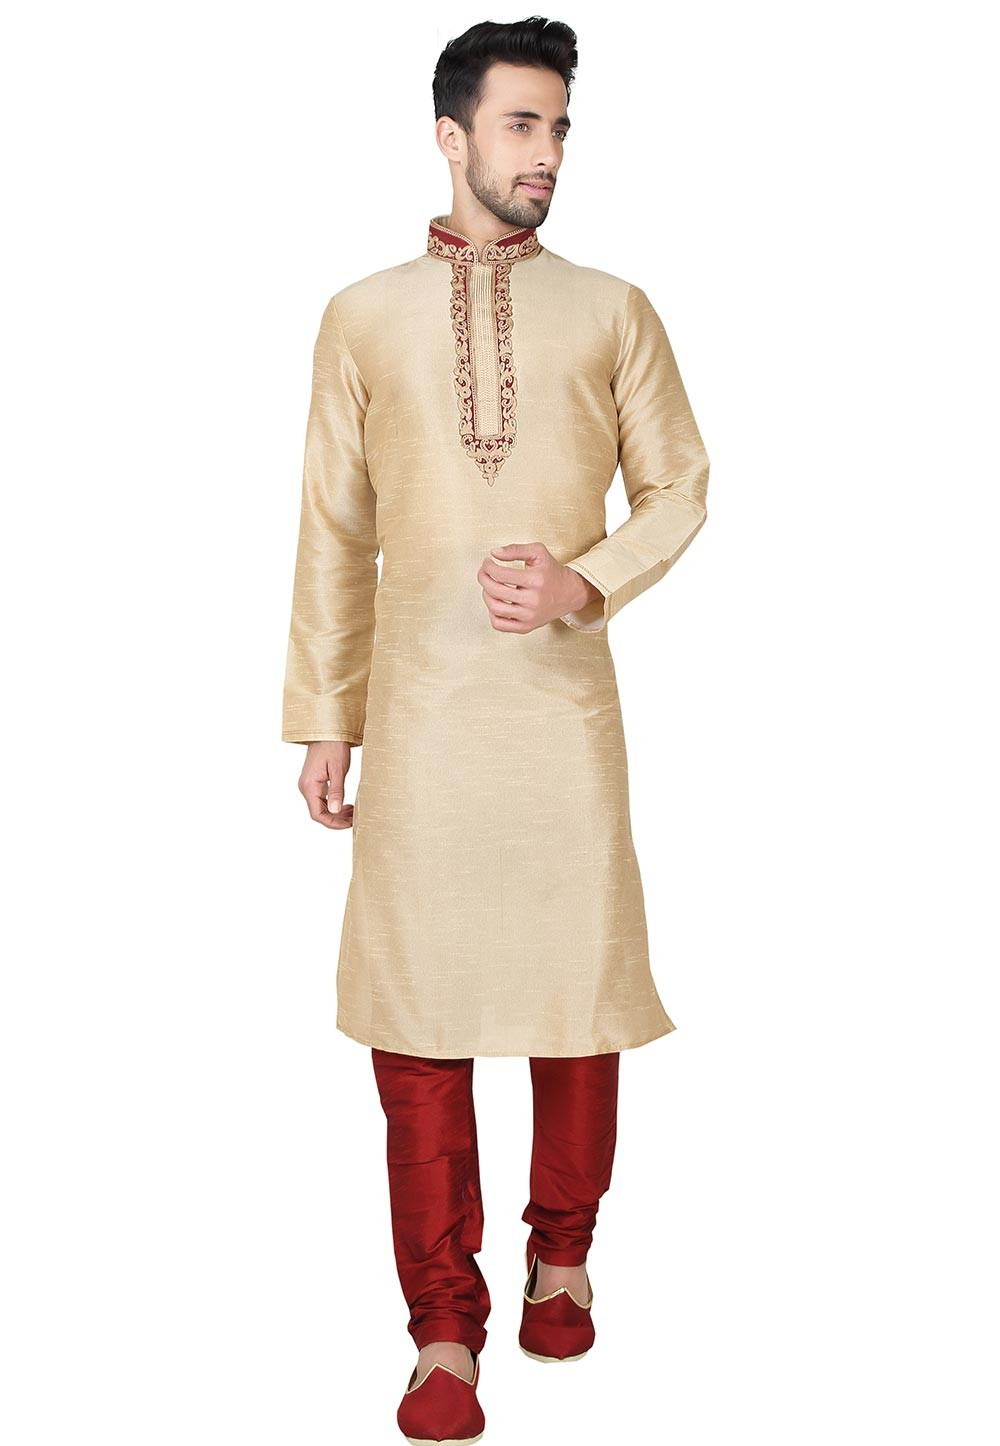 Exquisite Golden Color Art Silk Fabric Designer Kurta Pajama.